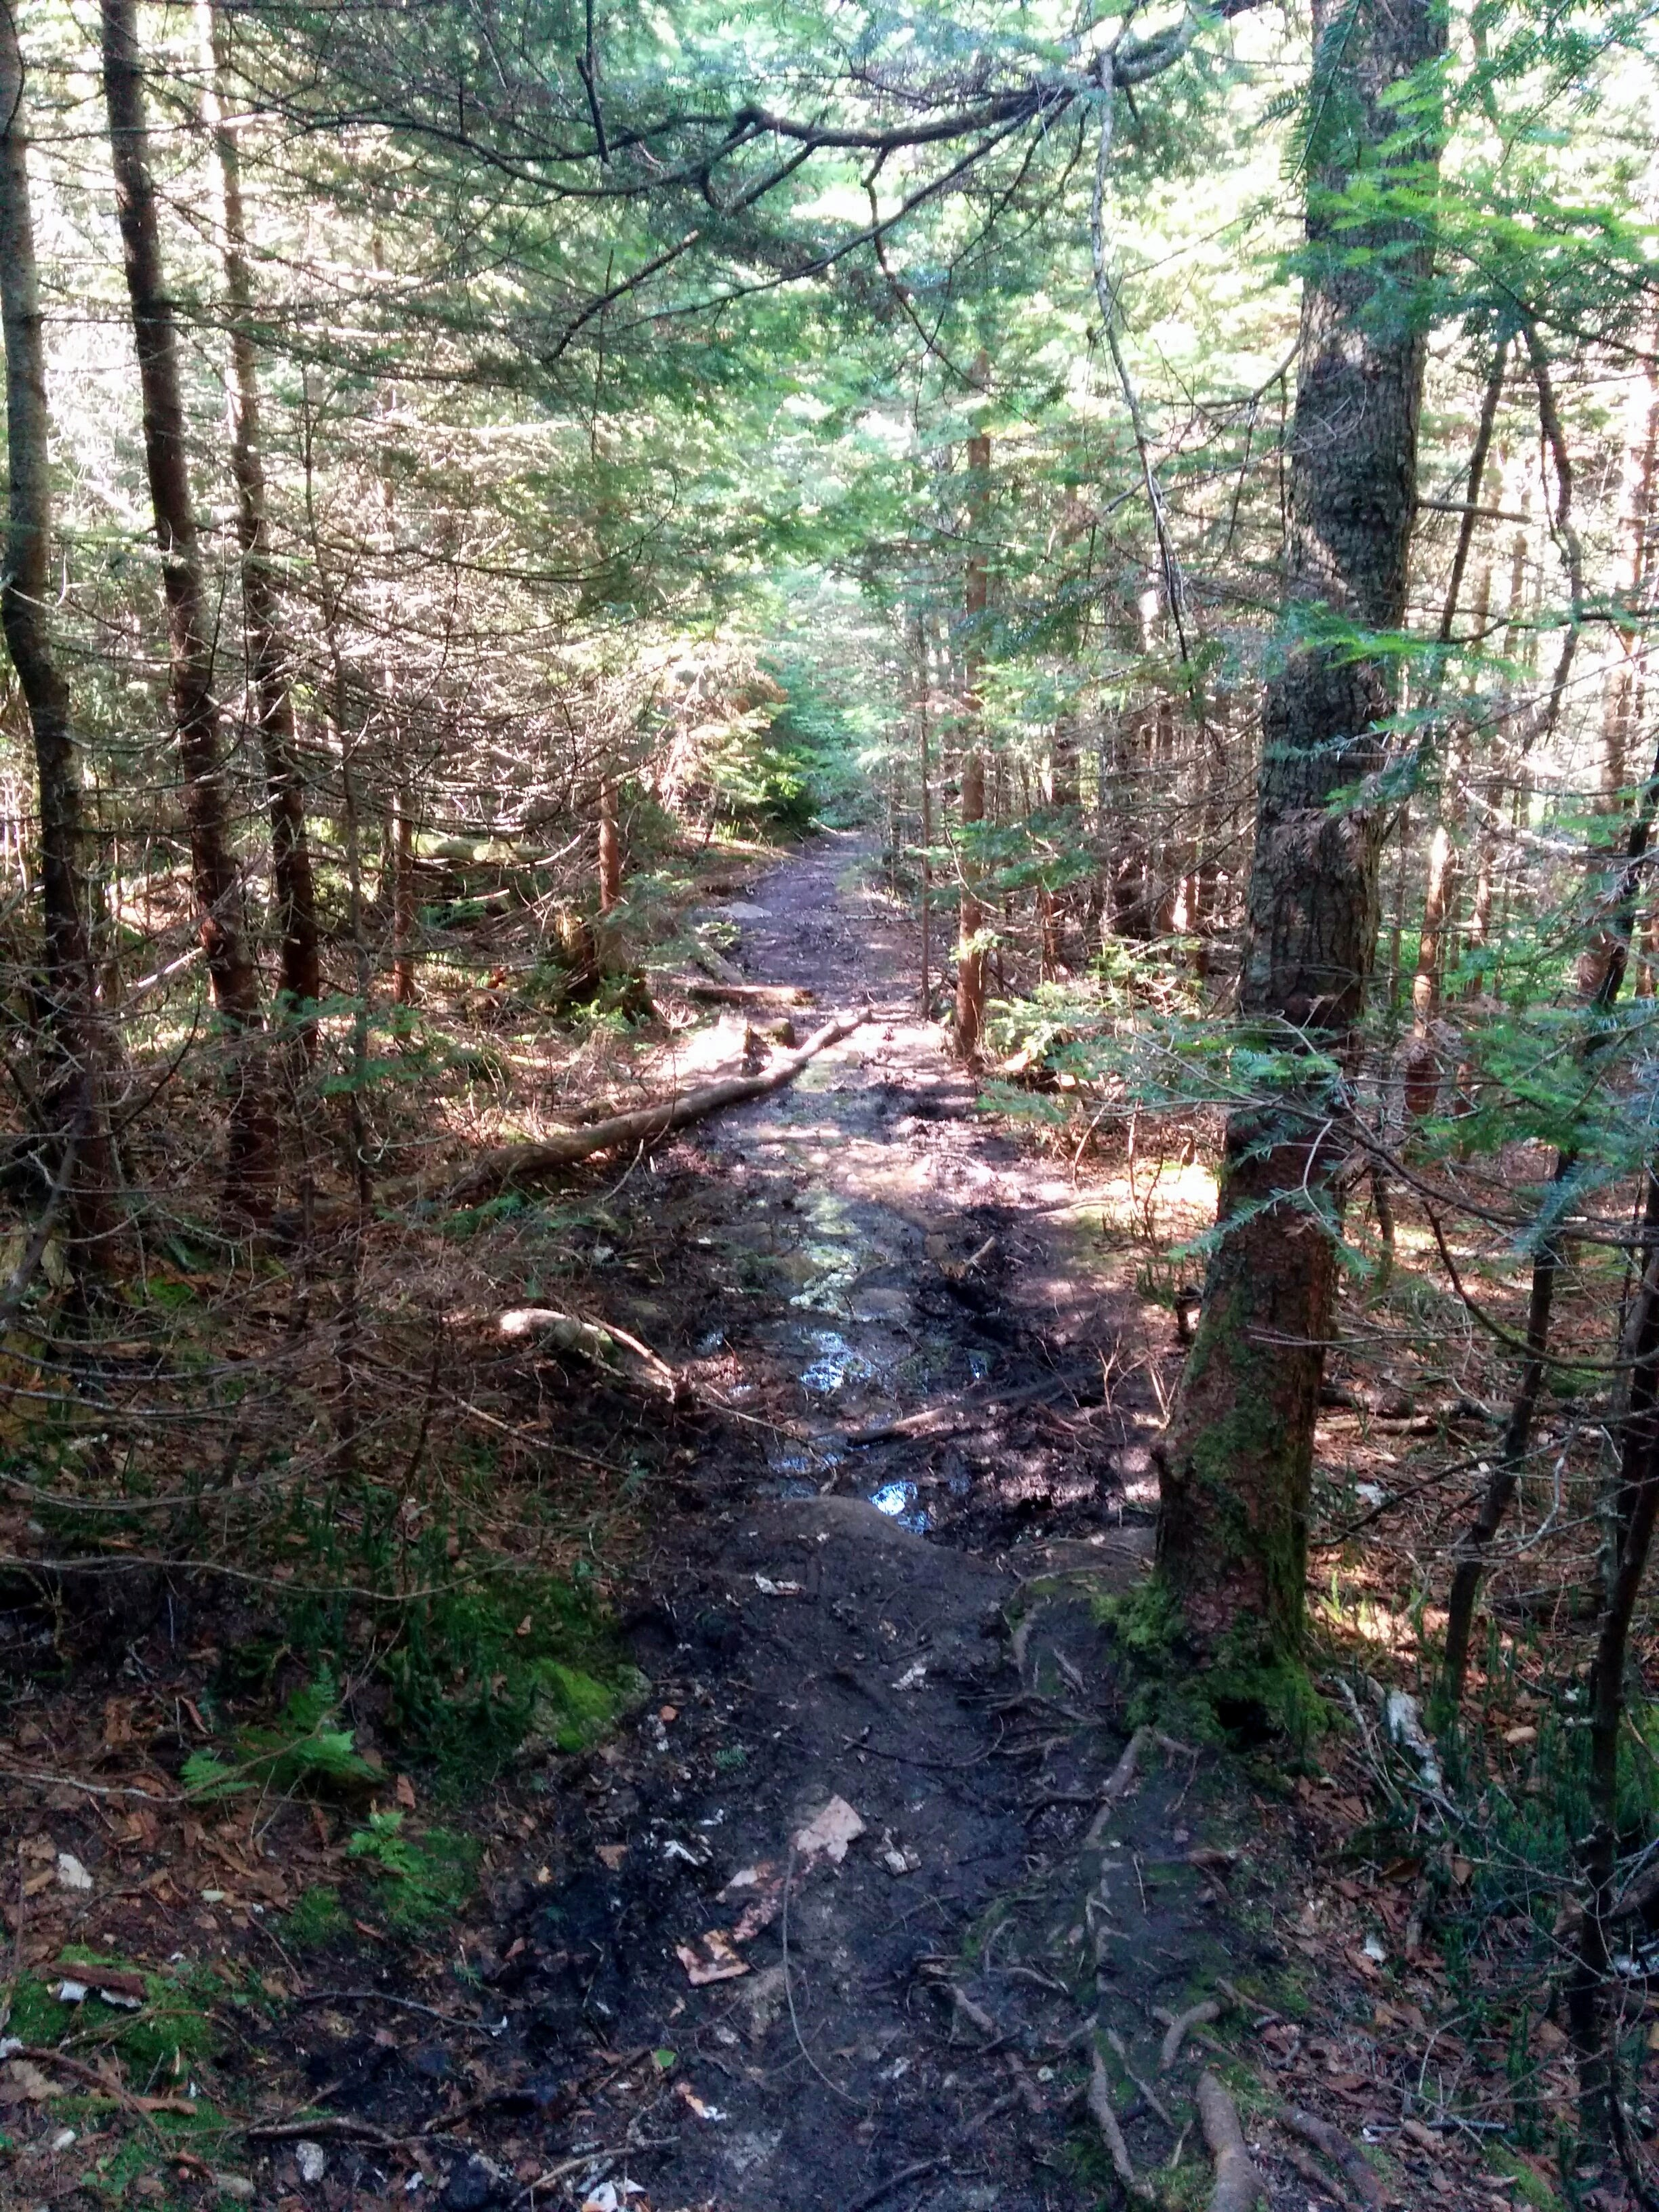 Photo: The trail gets mucky